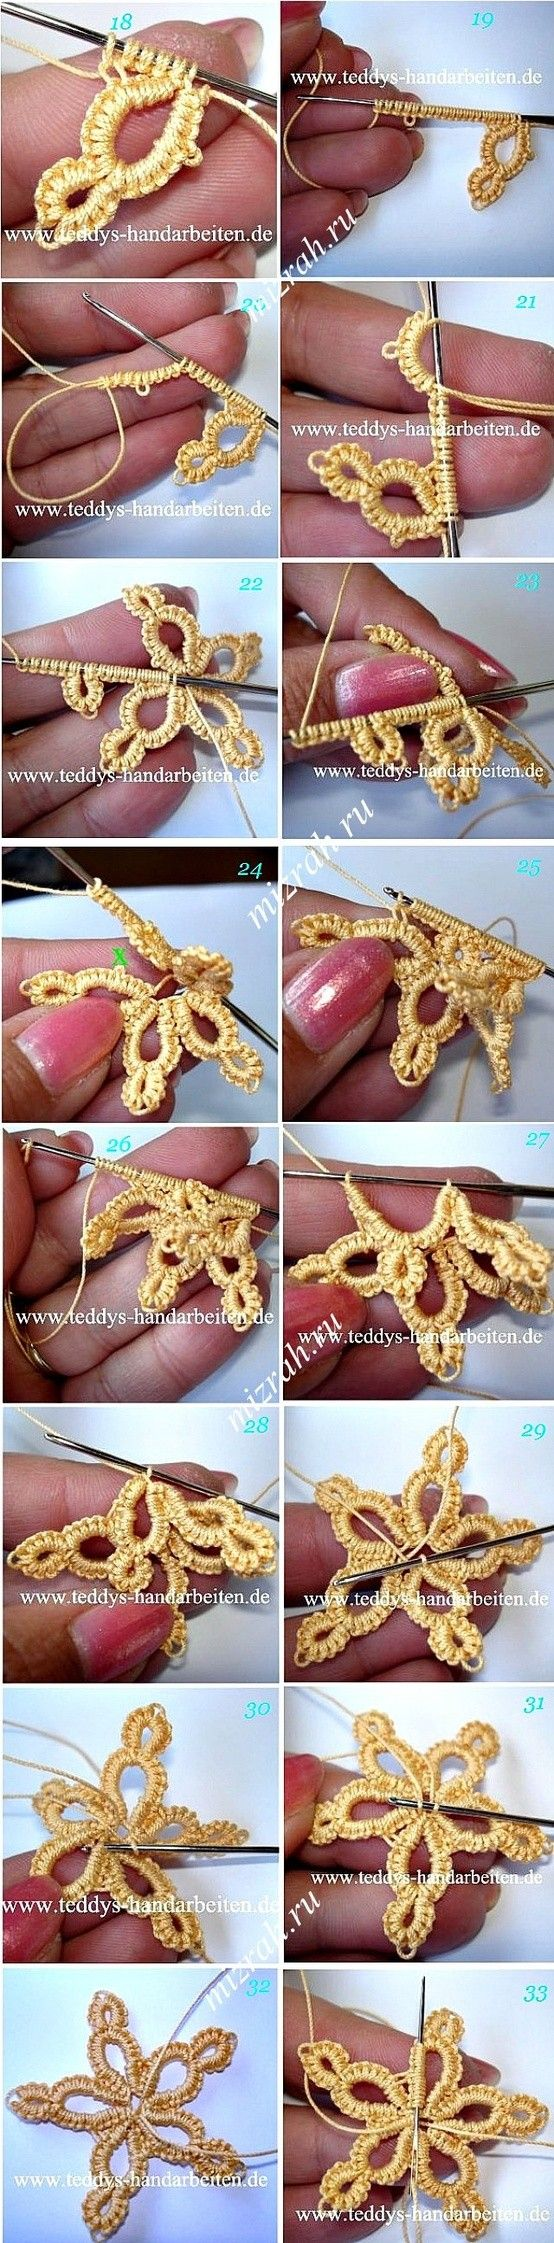 Nice clear pics for star. Irish crochet maybe?